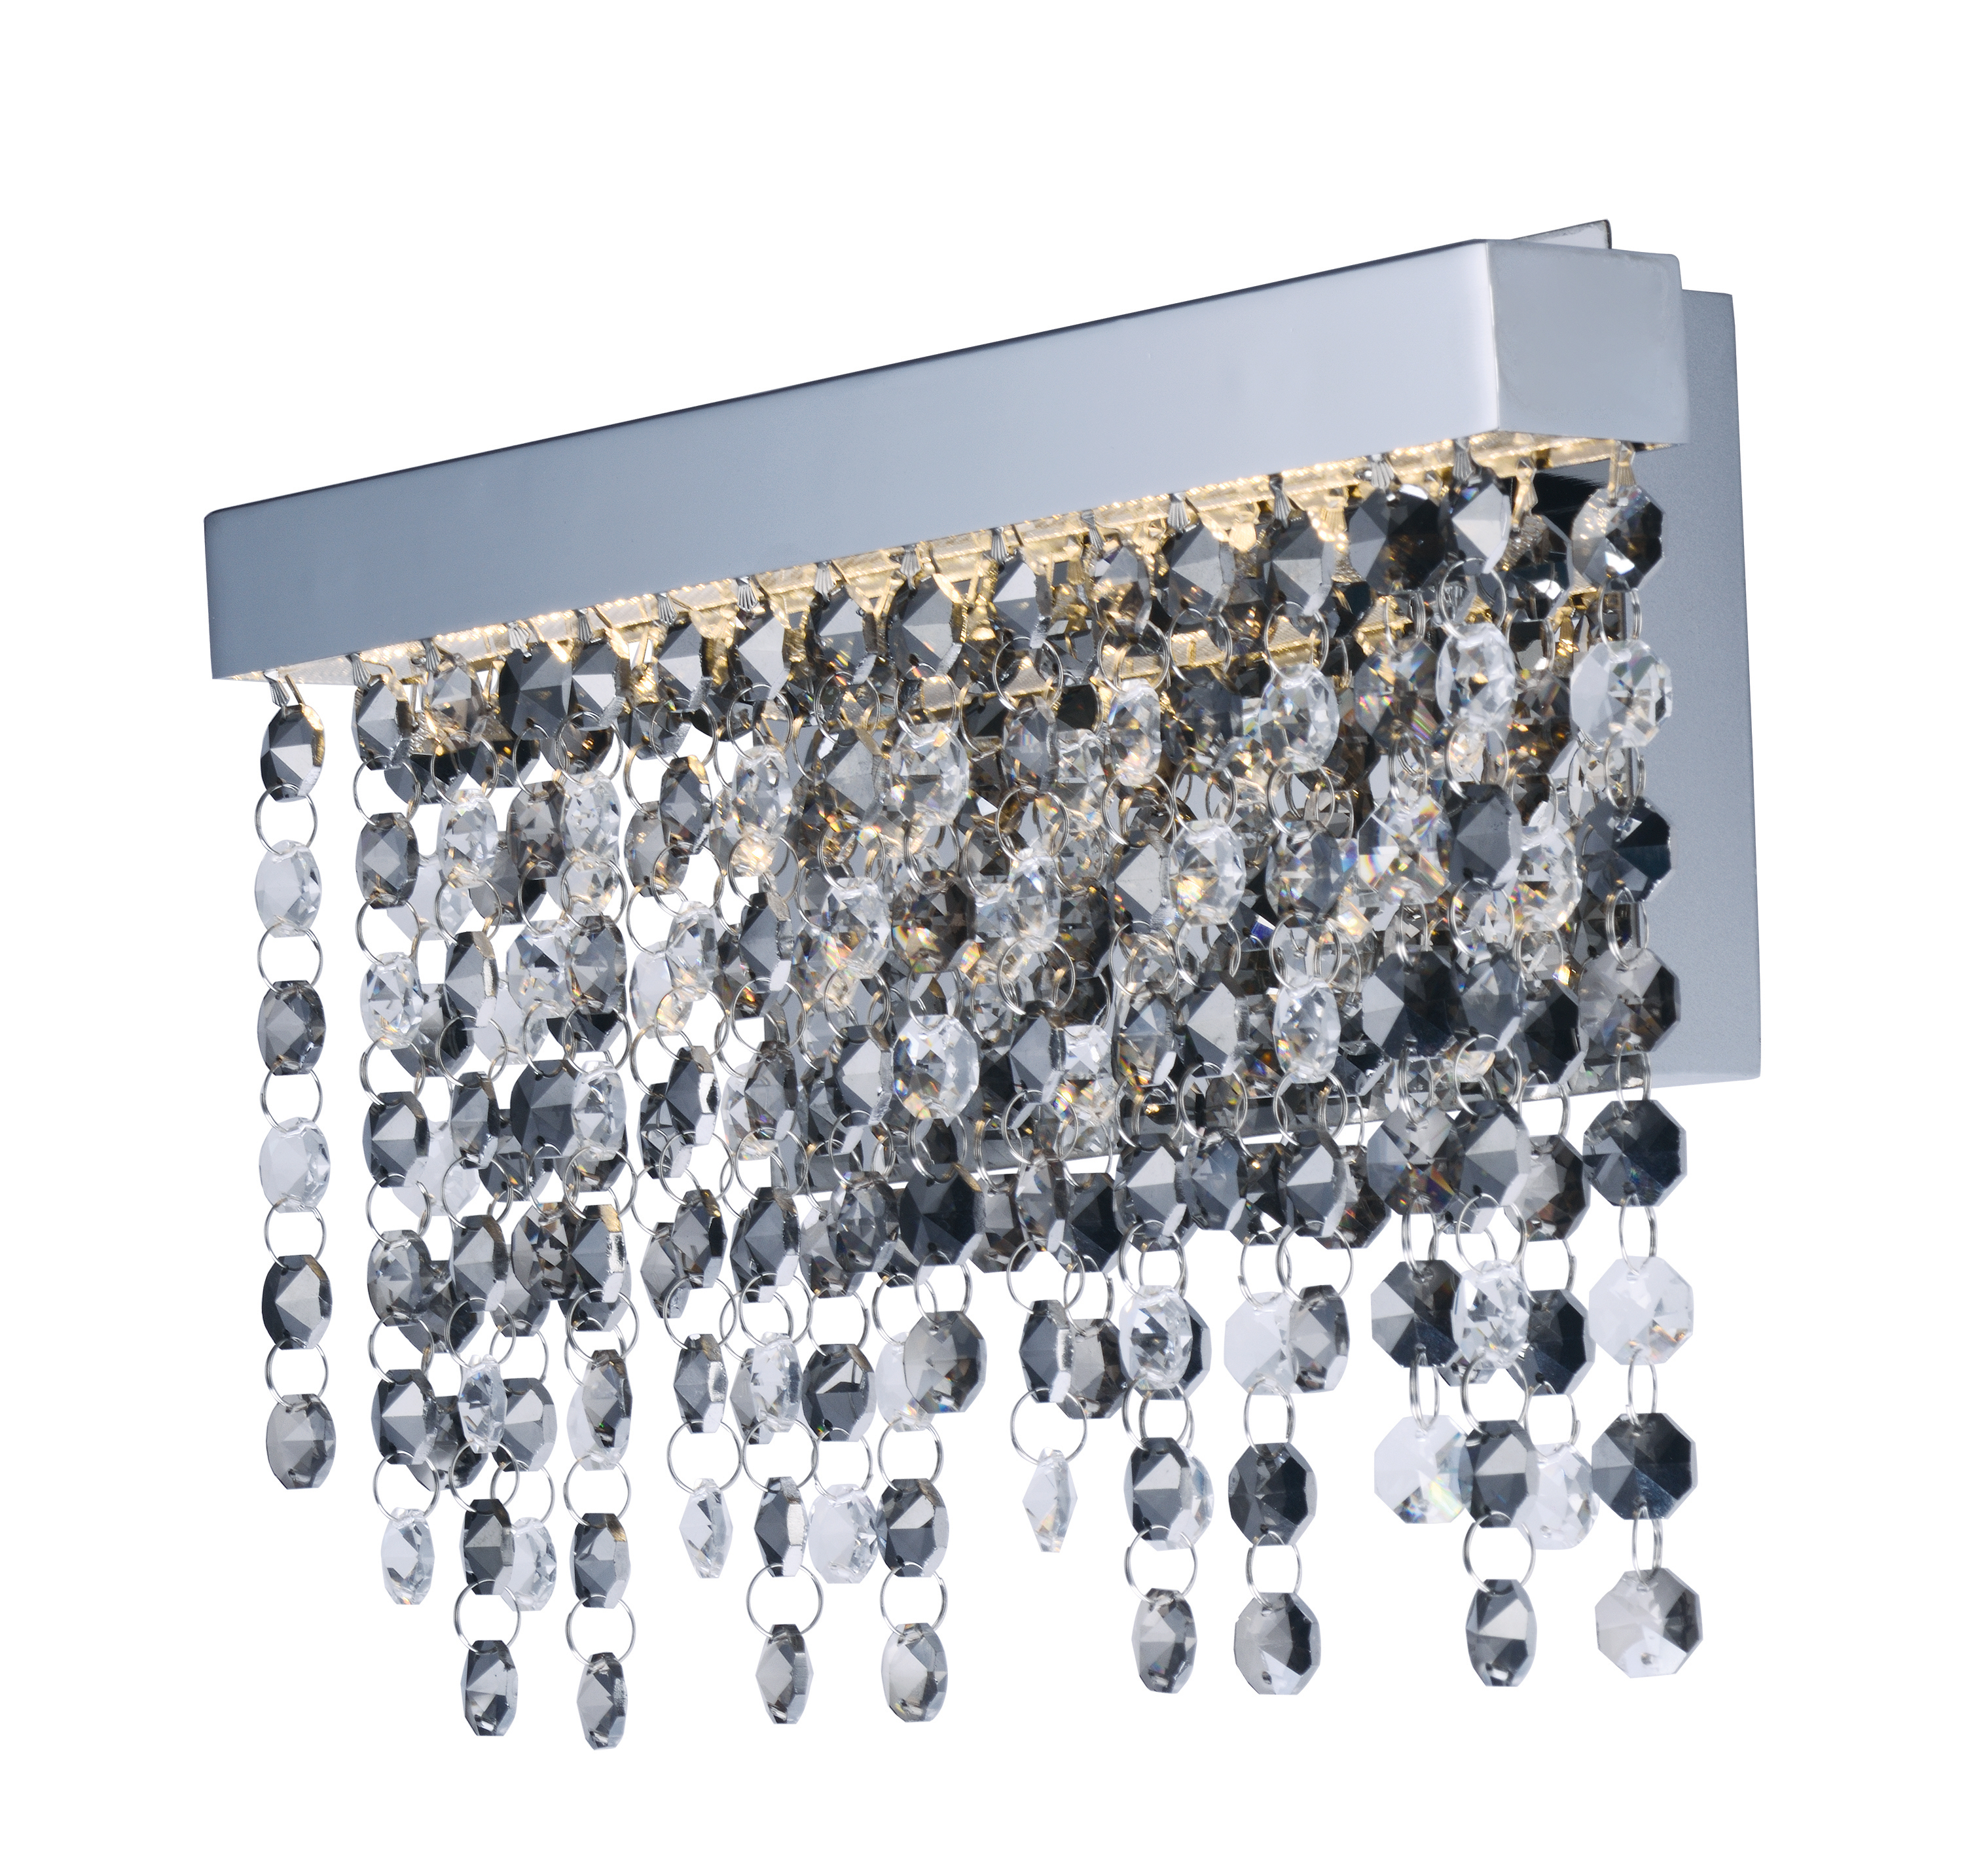 Midnight Shower LED Wall Sconce - Wall Sconce - Maxim Lighting